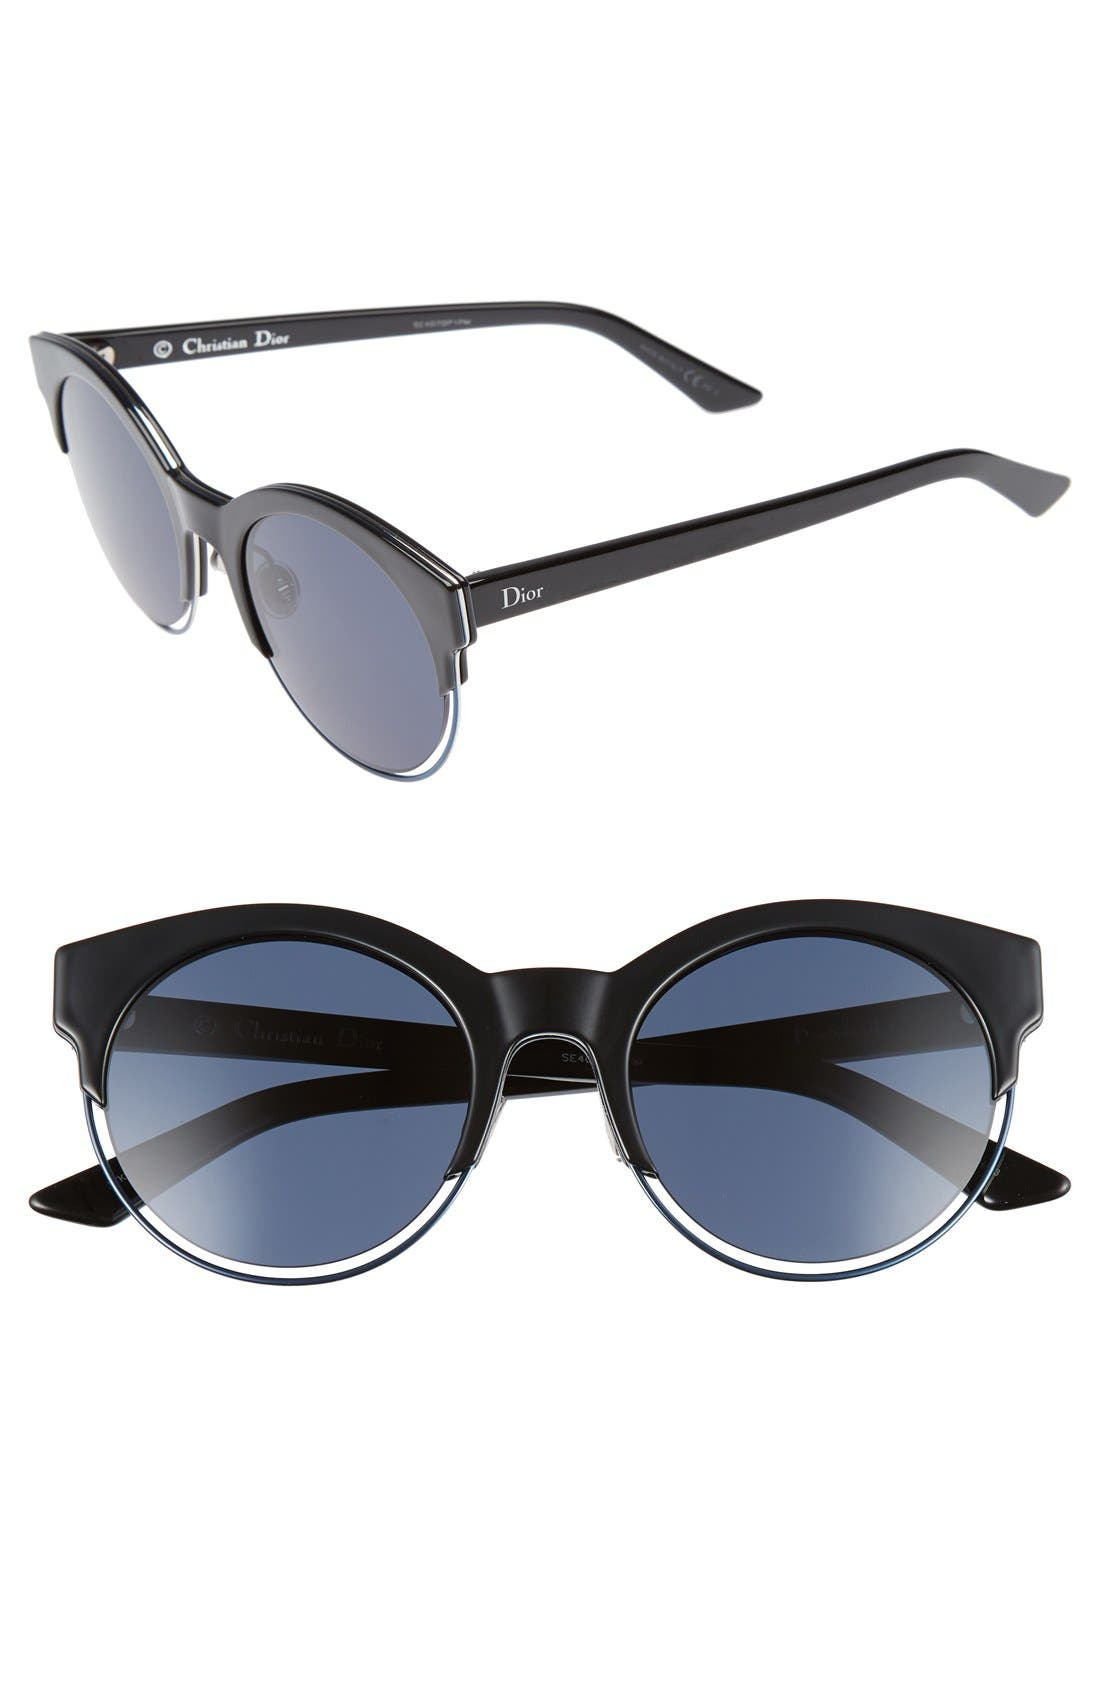 Alternate Image 1 Selected - Dior Siderall 1 53mm Round Sunglasses